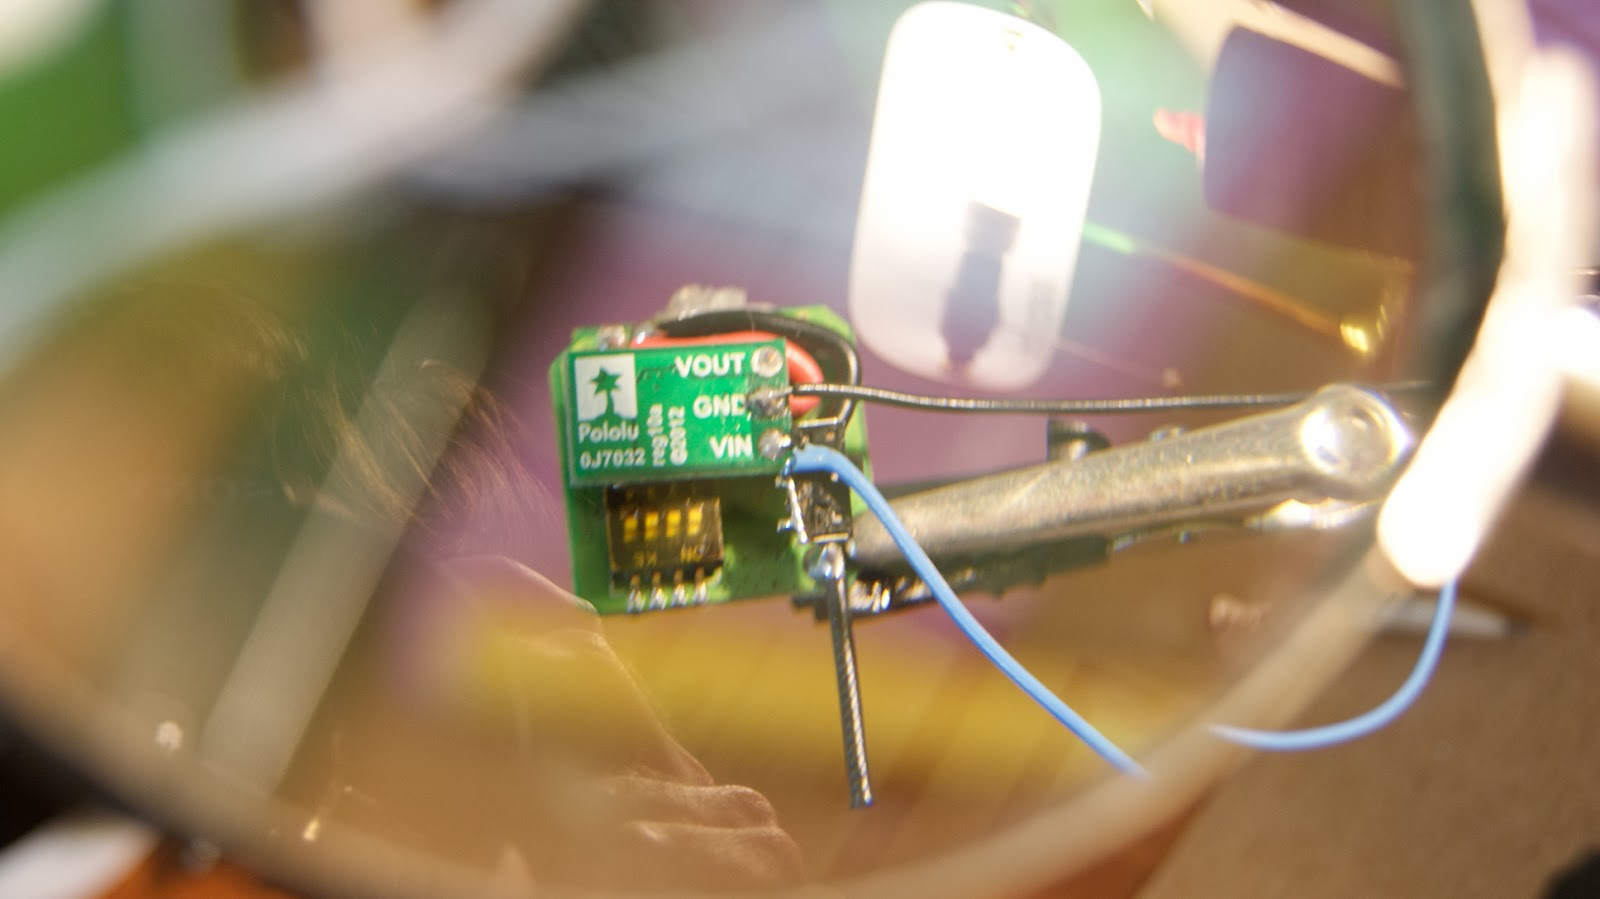 The Mental Munition Factory A Bugs Eye View Brought To You By 5 Volt Voltage Regulator Circuit Make Sure Camera And Transmitter Had Adequate Power Pololu Step Up Was Integrated Into System